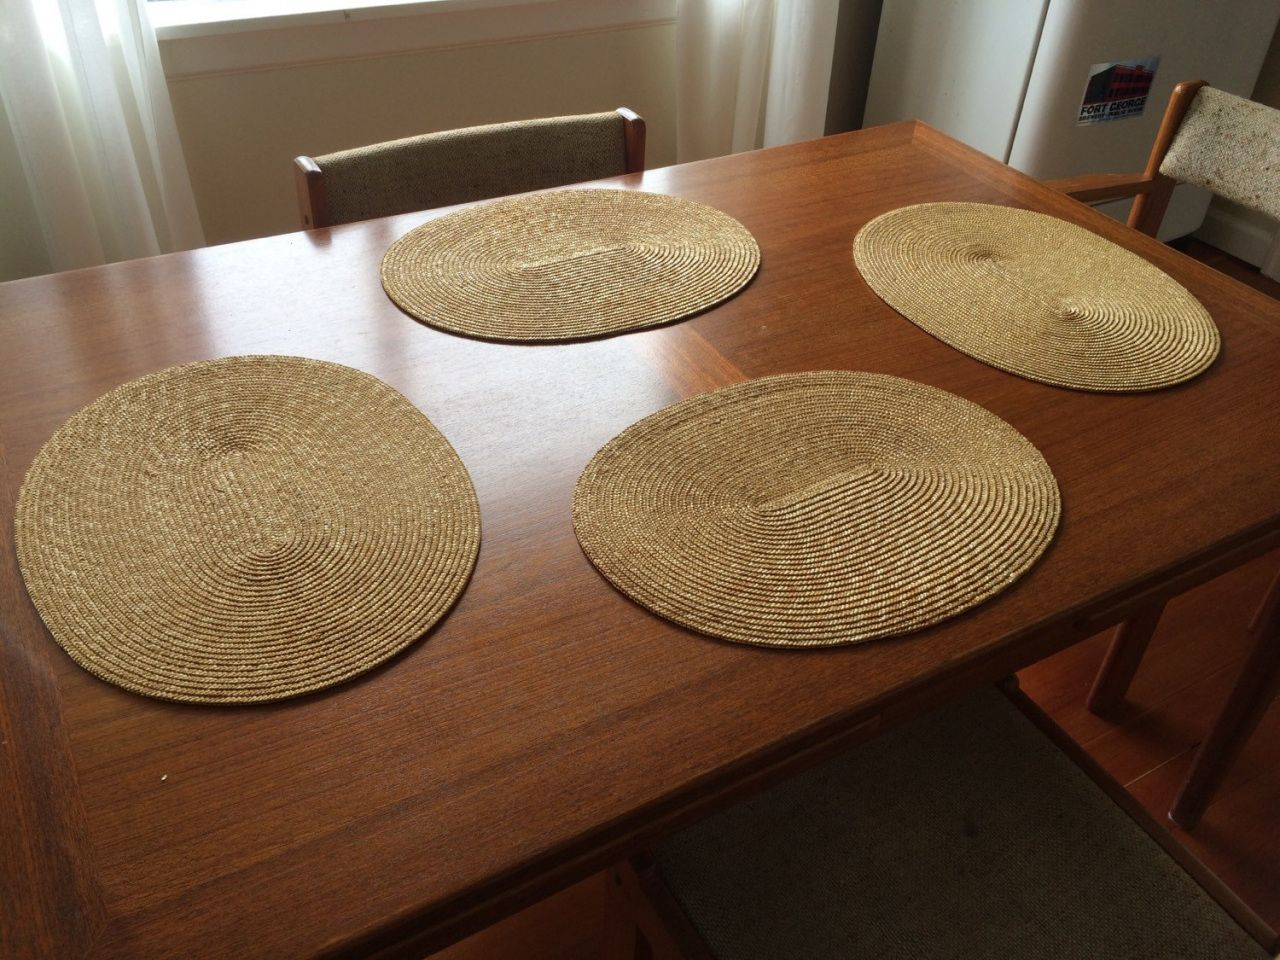 50 Small Placemats For Round Tables Modern Rustic Furniture Check More At Http